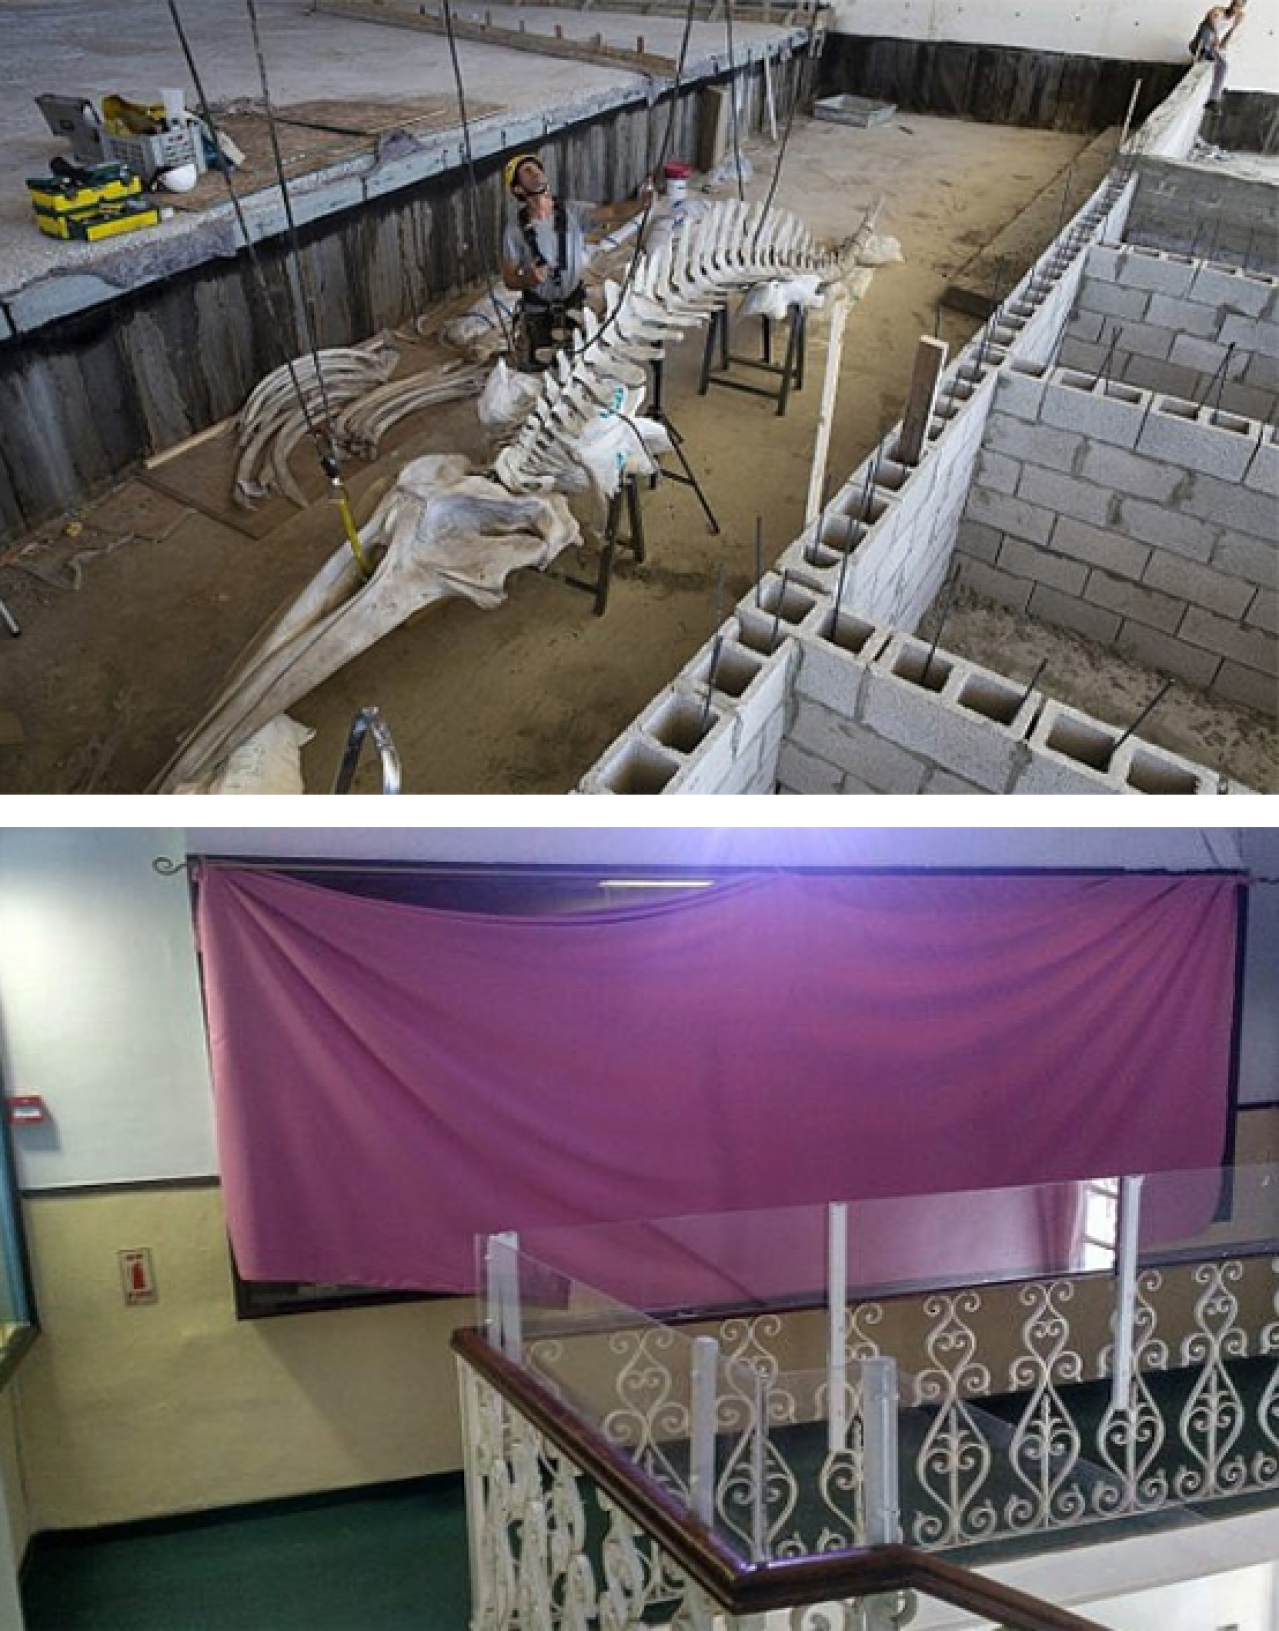 (Top) Work in progress at the Steinhardt Museum of Natural History in Tel Aviv: Whale skeleton replica getting prepared. (Bottom) Science under veil: Exhibit on human evolution kept under shroud at the Biblical Museum of Natural History, Beit Shemesh,Jerusalem.  Pictures Courtesy: 'Times of Israel'